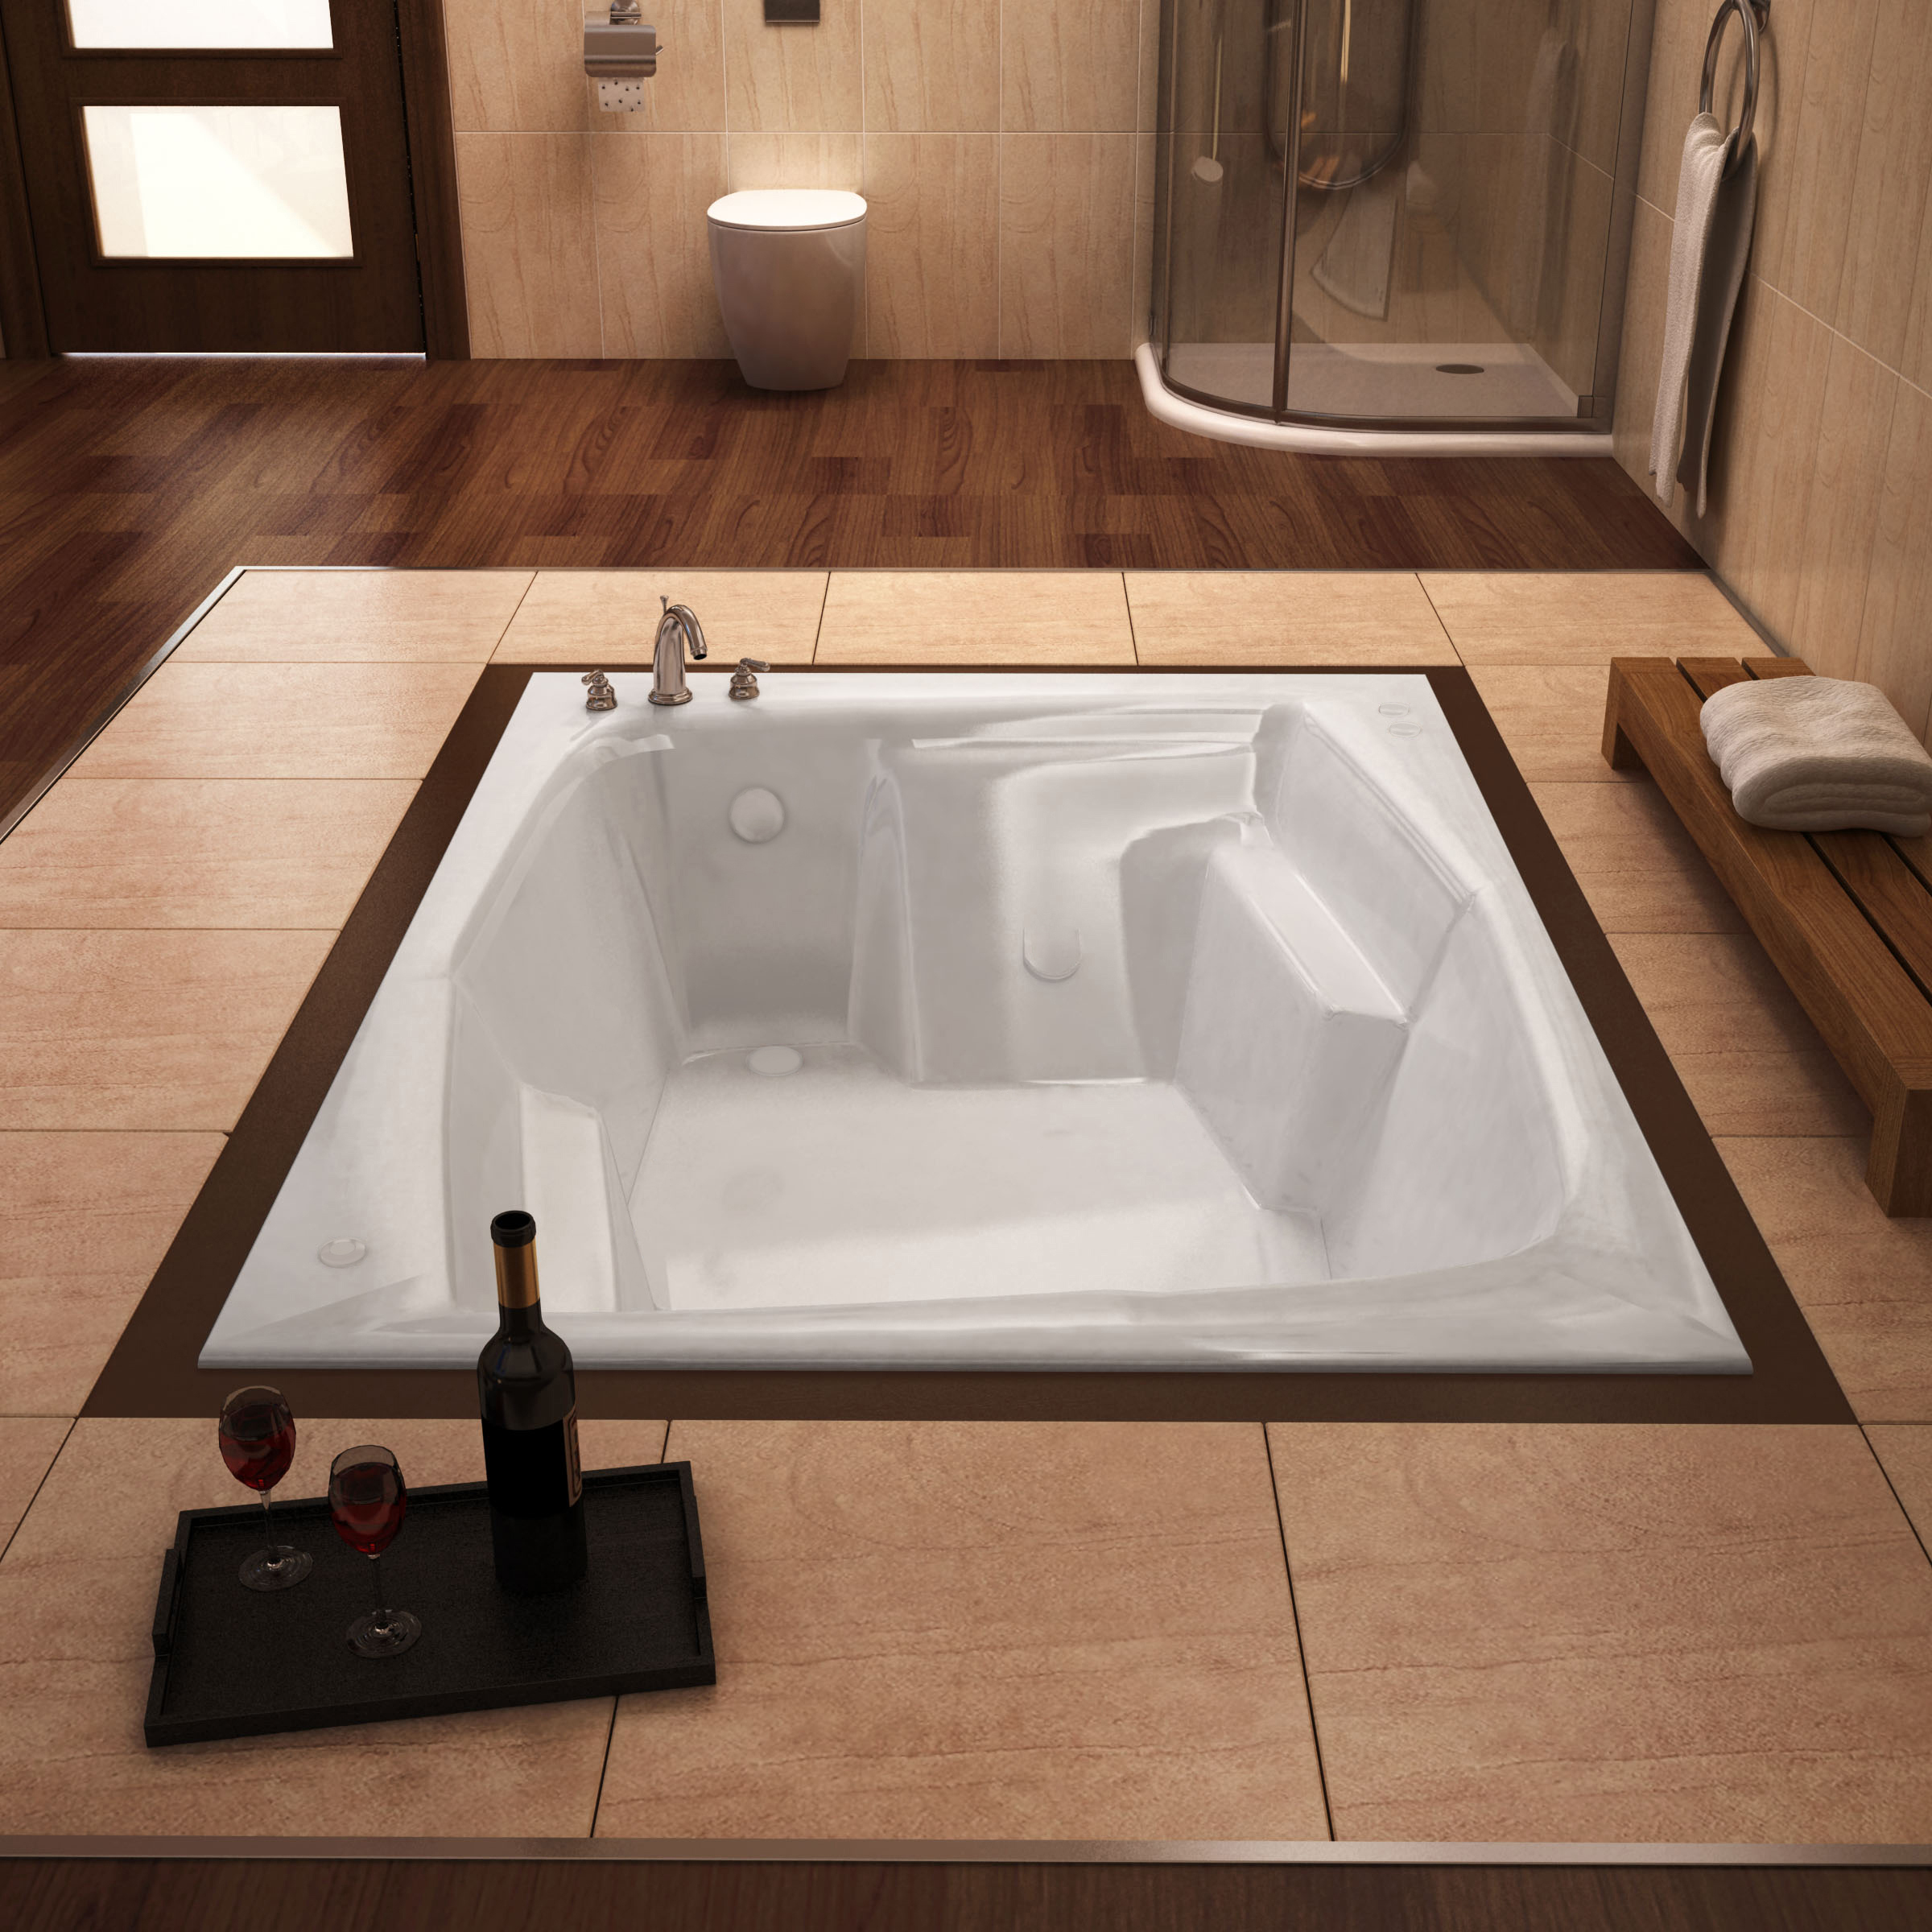 Venzi Capri 72 x 54 Rectangular Bathtub